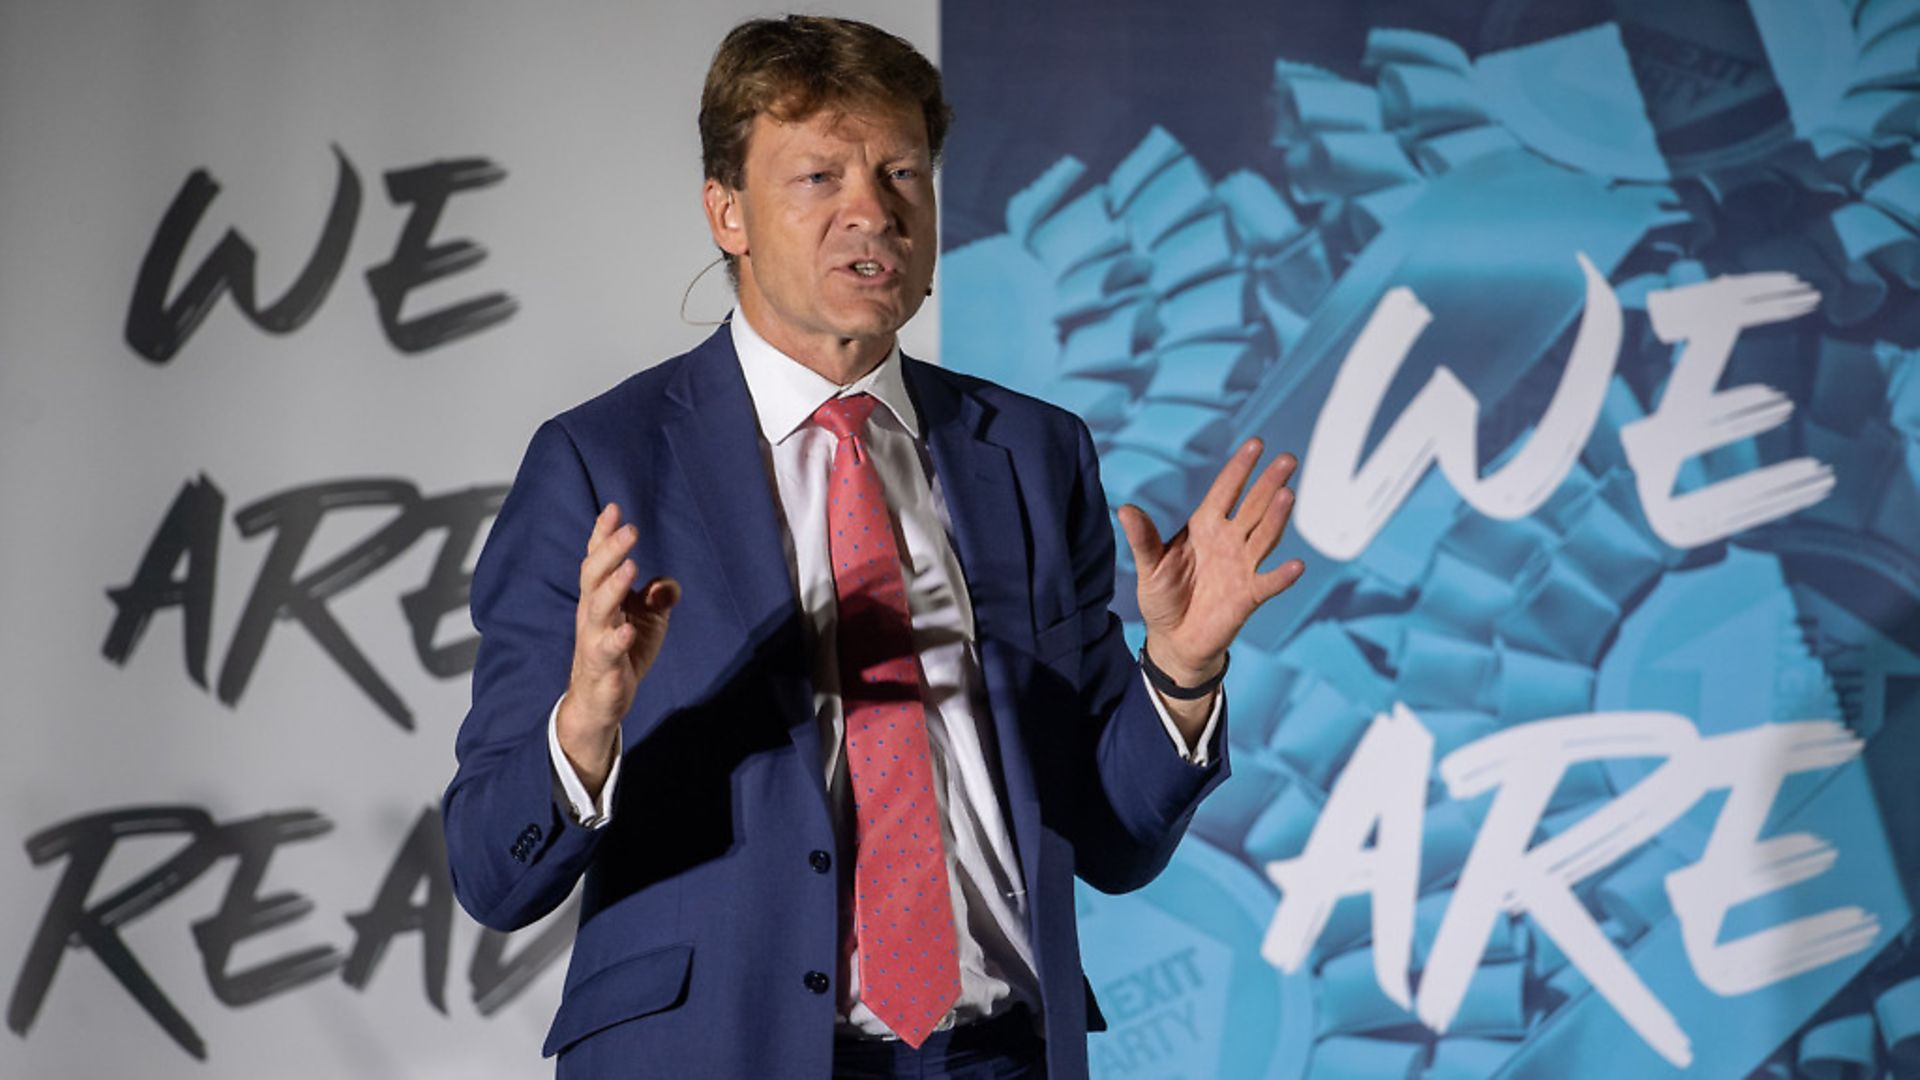 Richard Tice, former chairman of the Brexit Party, is now the new leader of Reform UK - Credit: PA Wire/PA Images